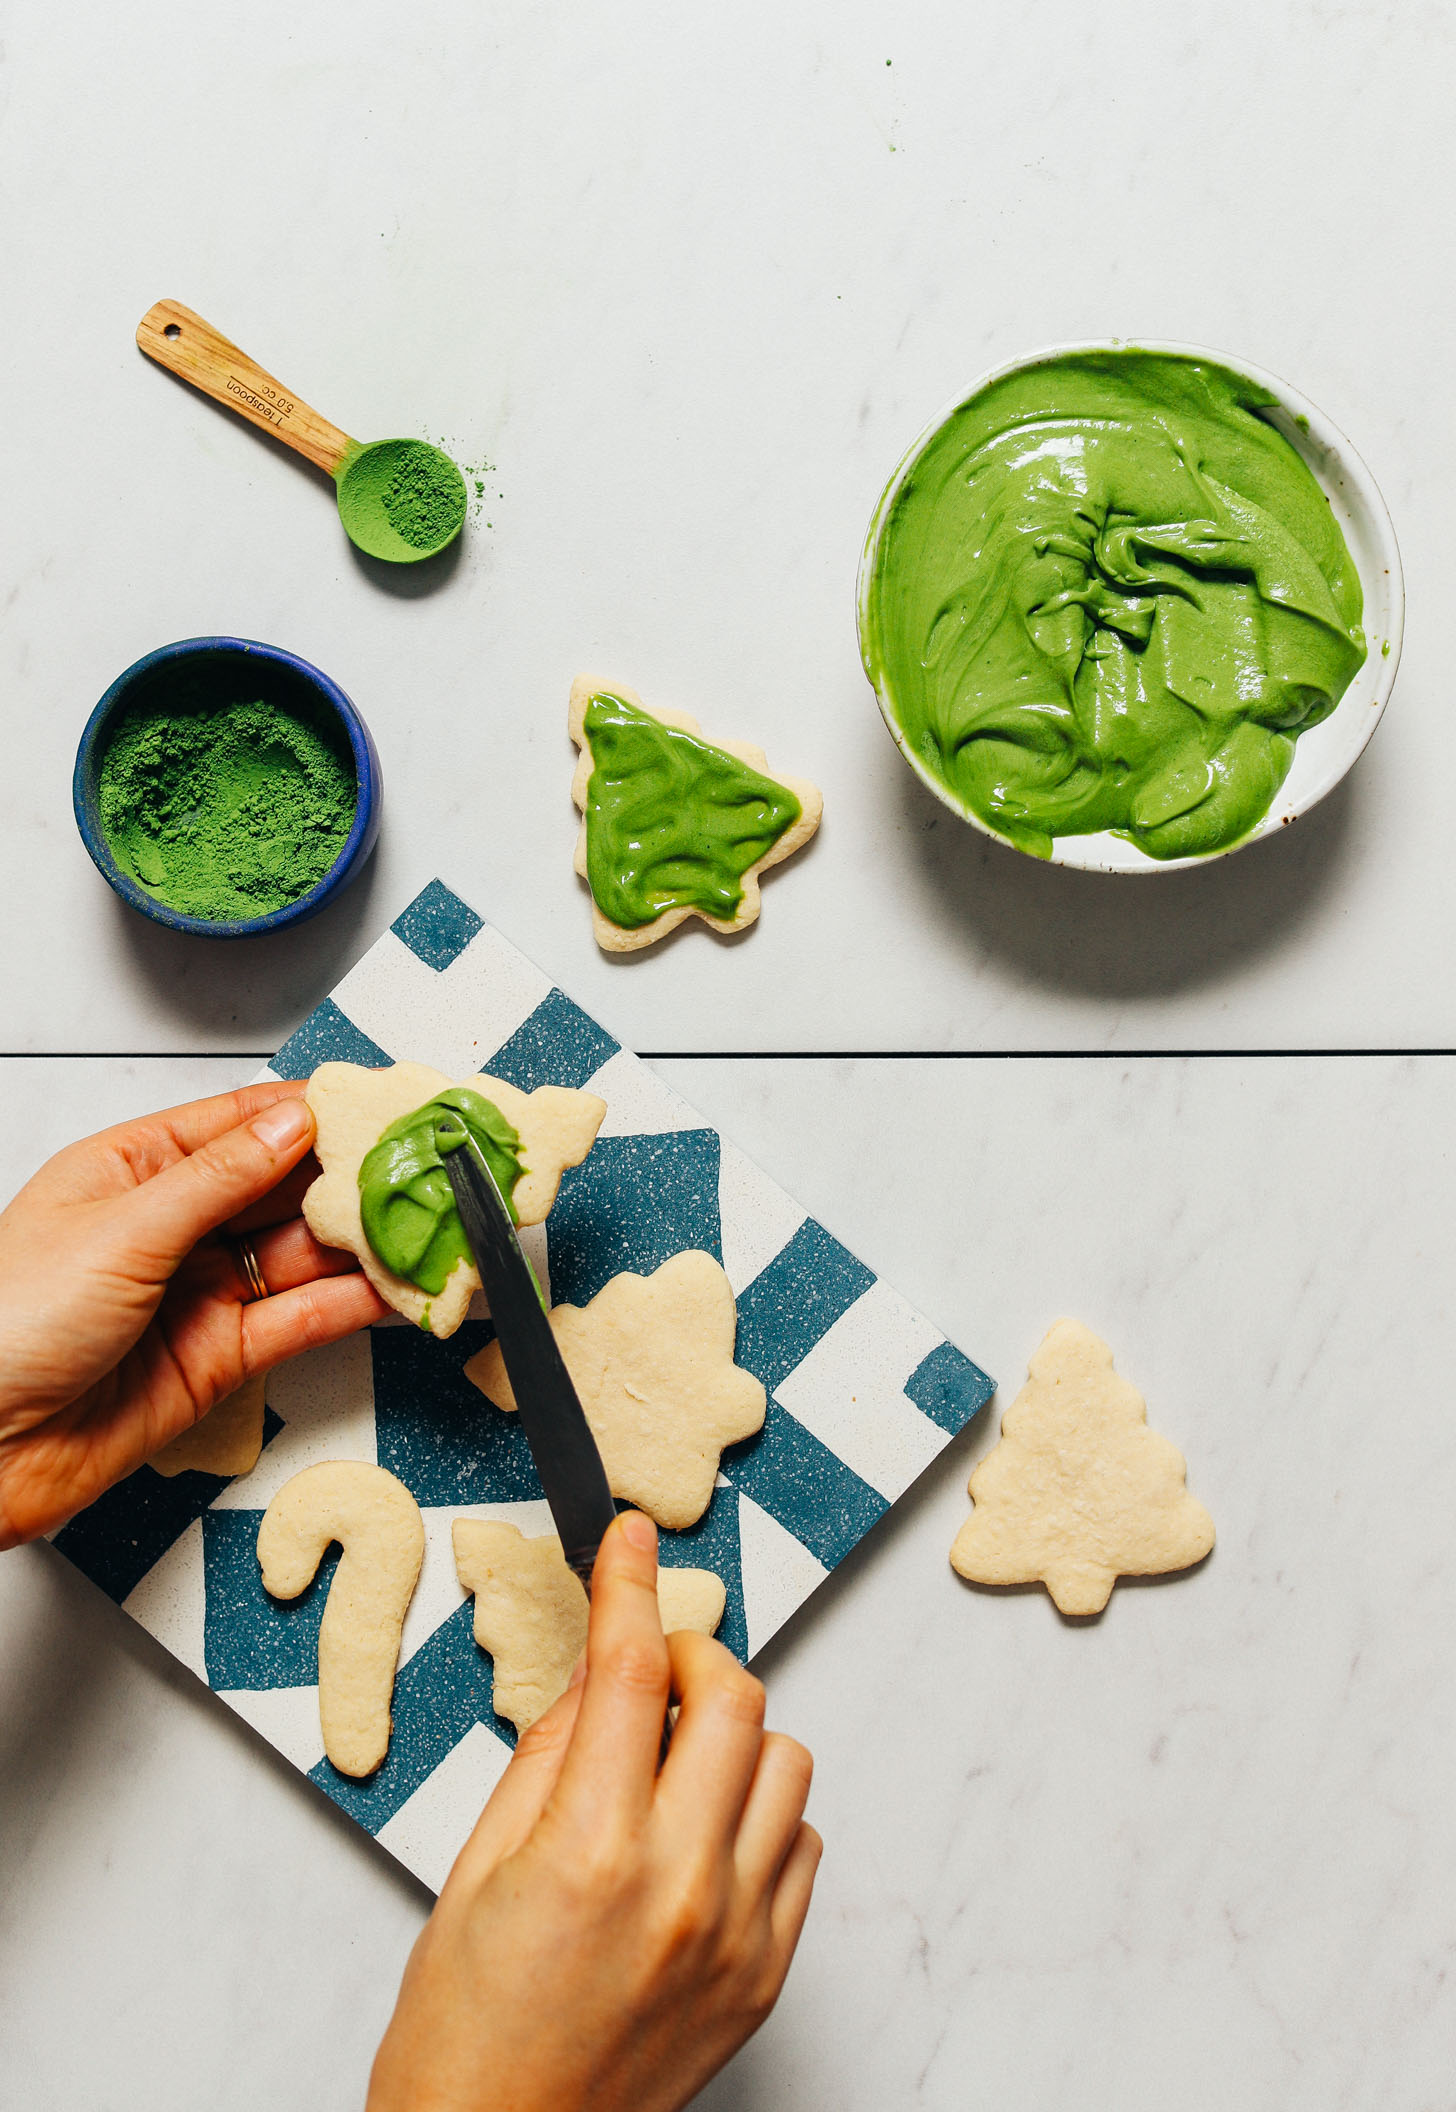 Spreading vegan frosting made with matcha onto a sugar cookie